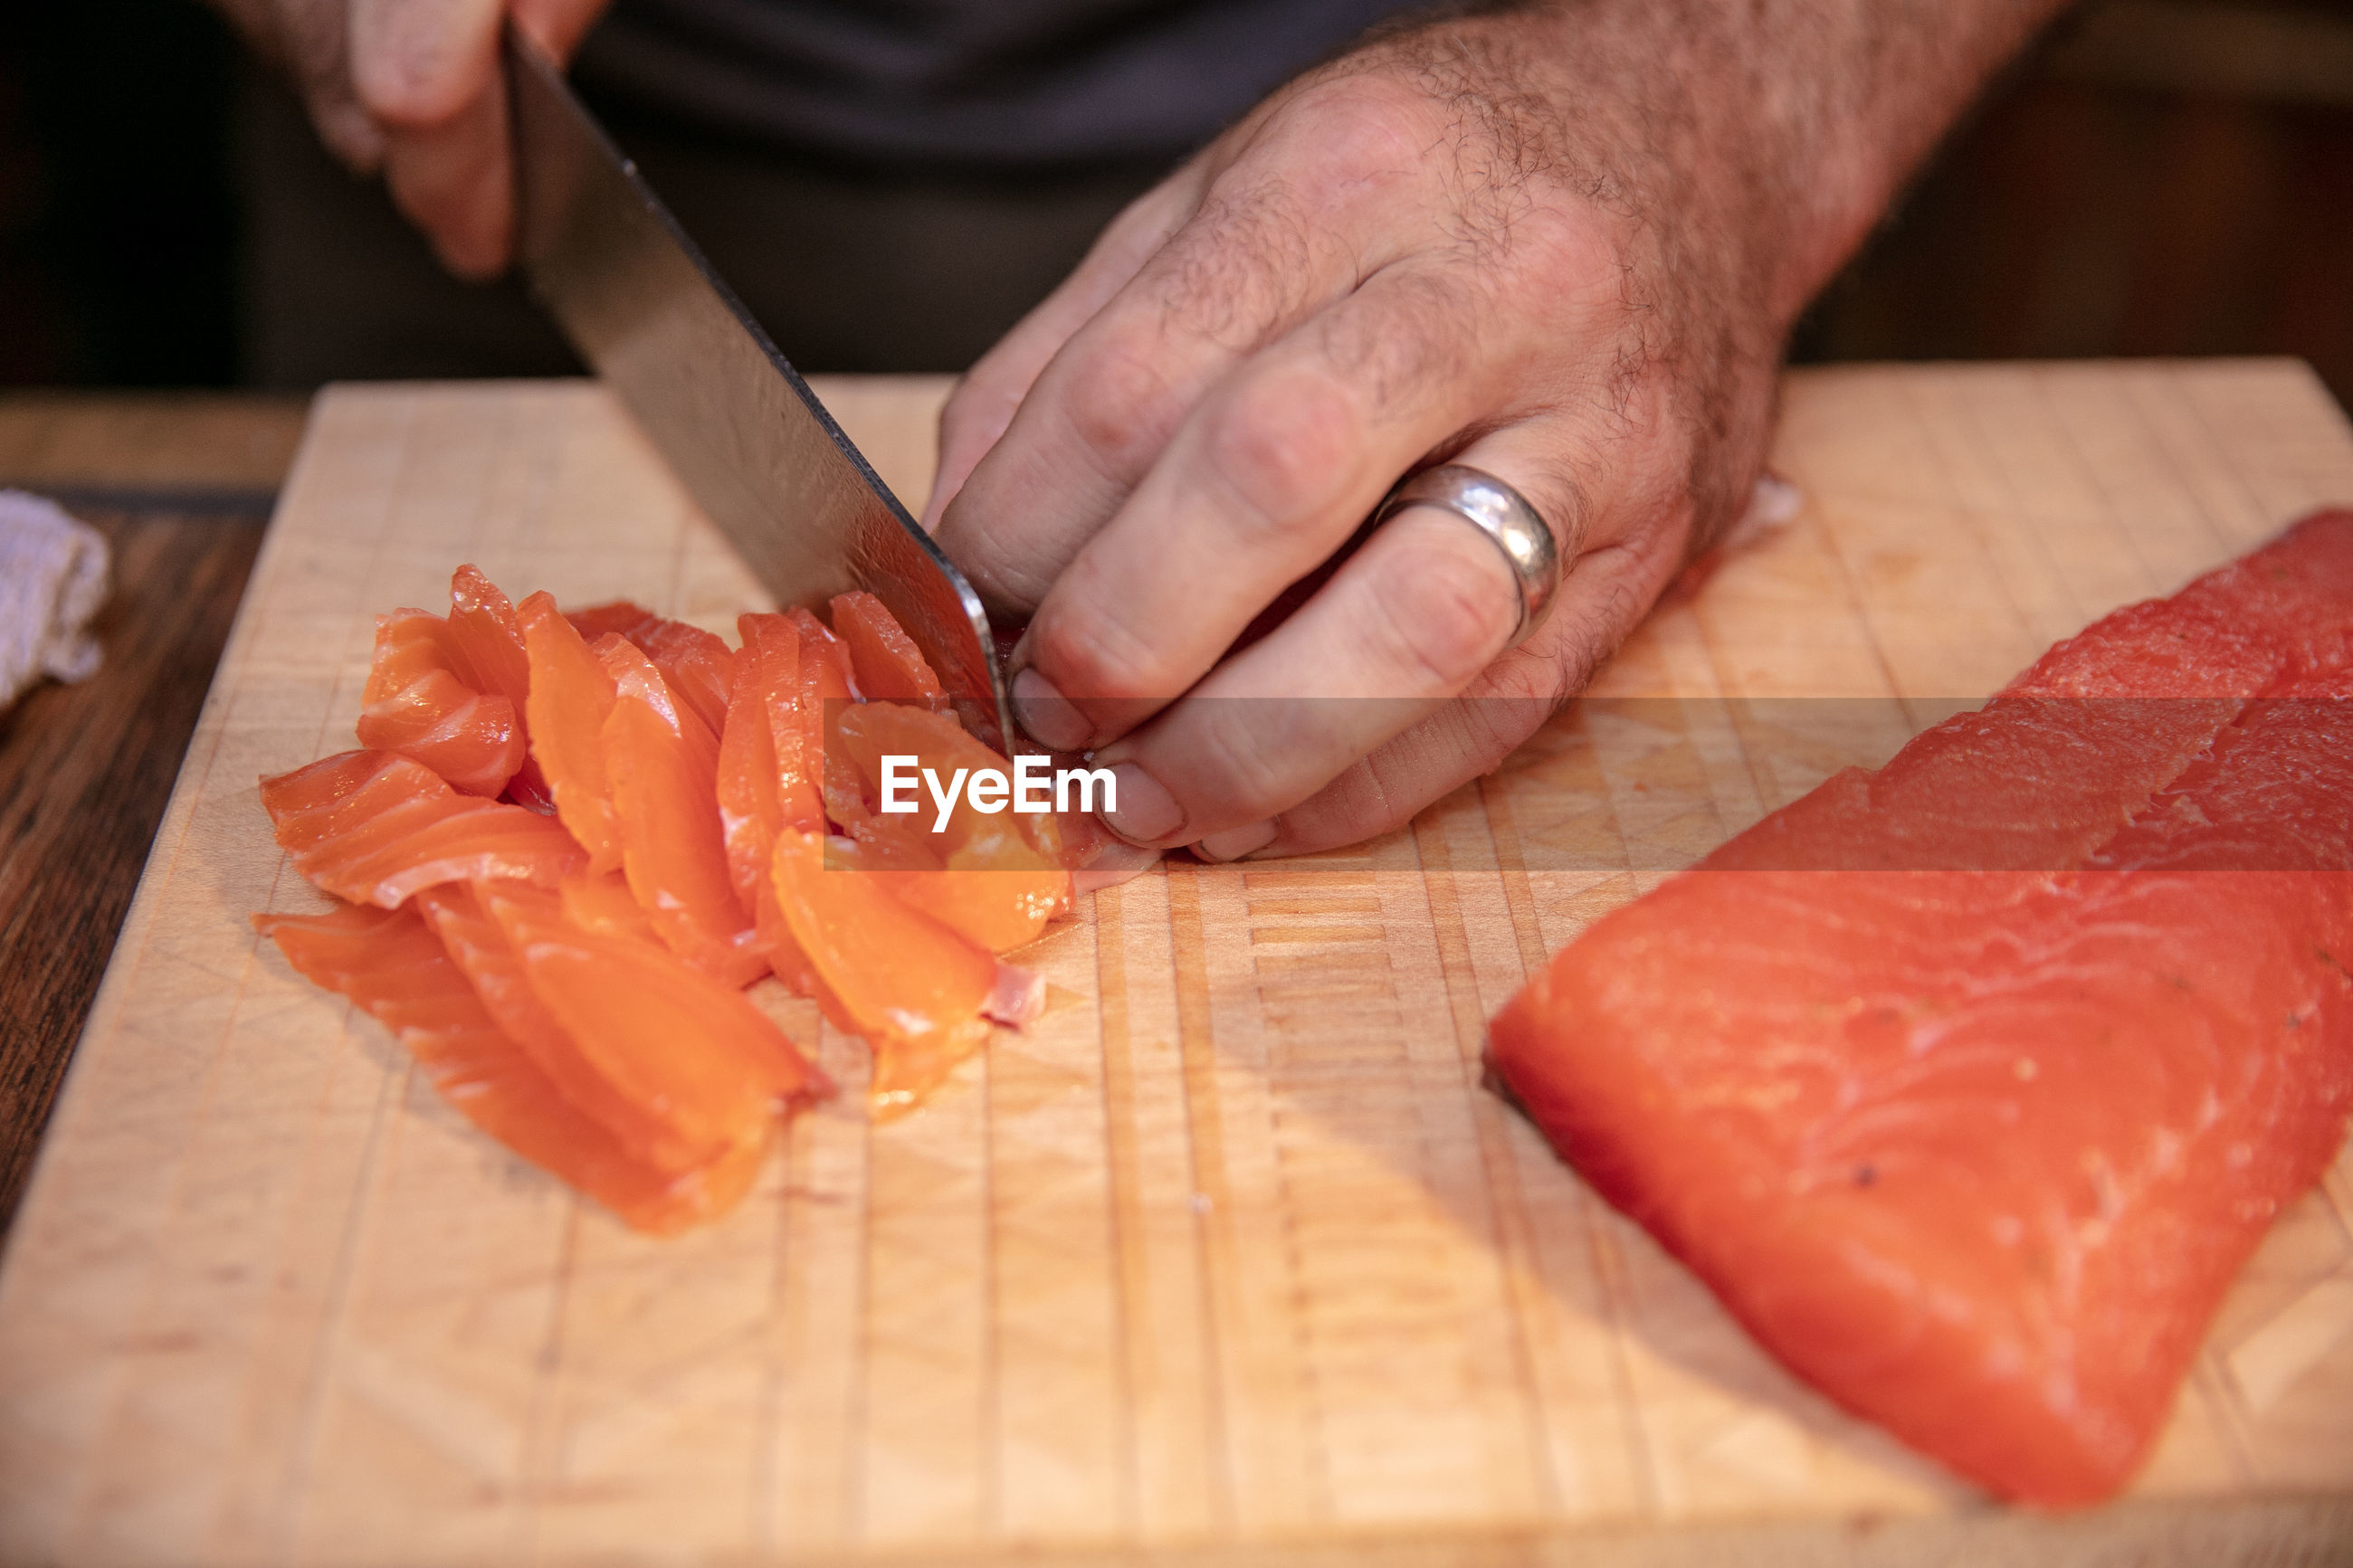 Cropped hands cutting salmon on cutting board